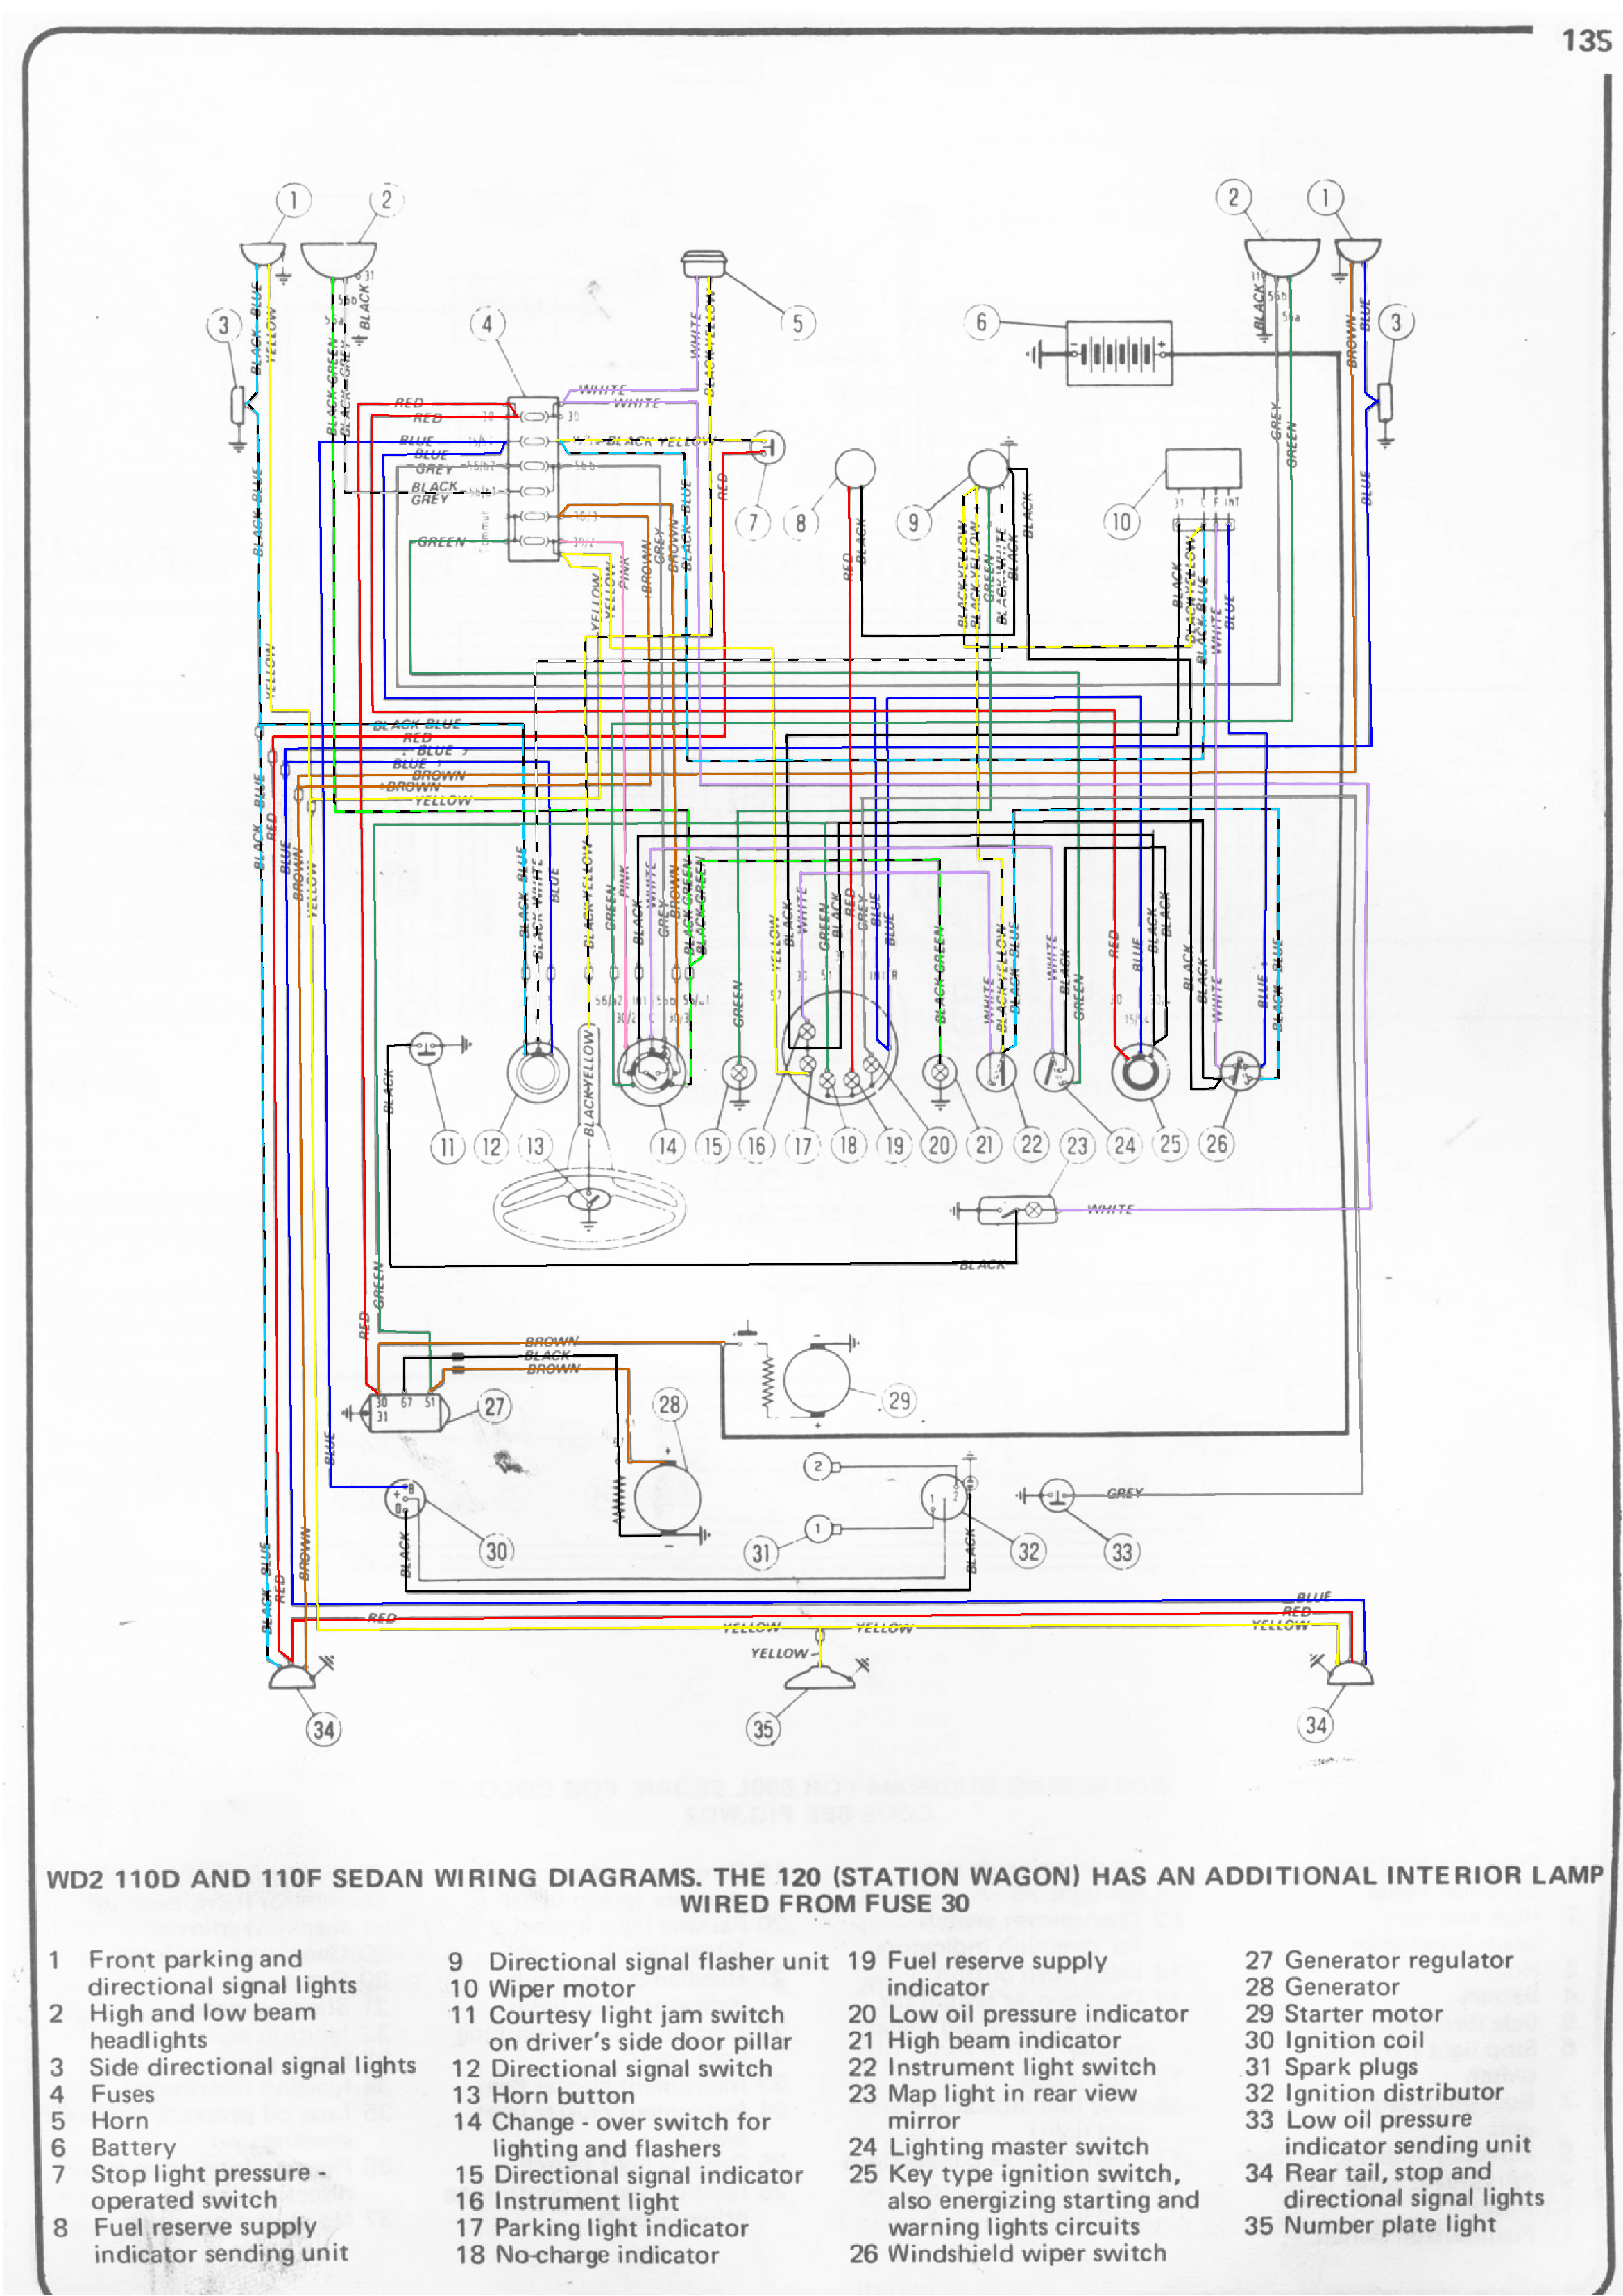 fiat - car manuals, wiring diagrams pdf & fault codes fiat ac wiring diagrams